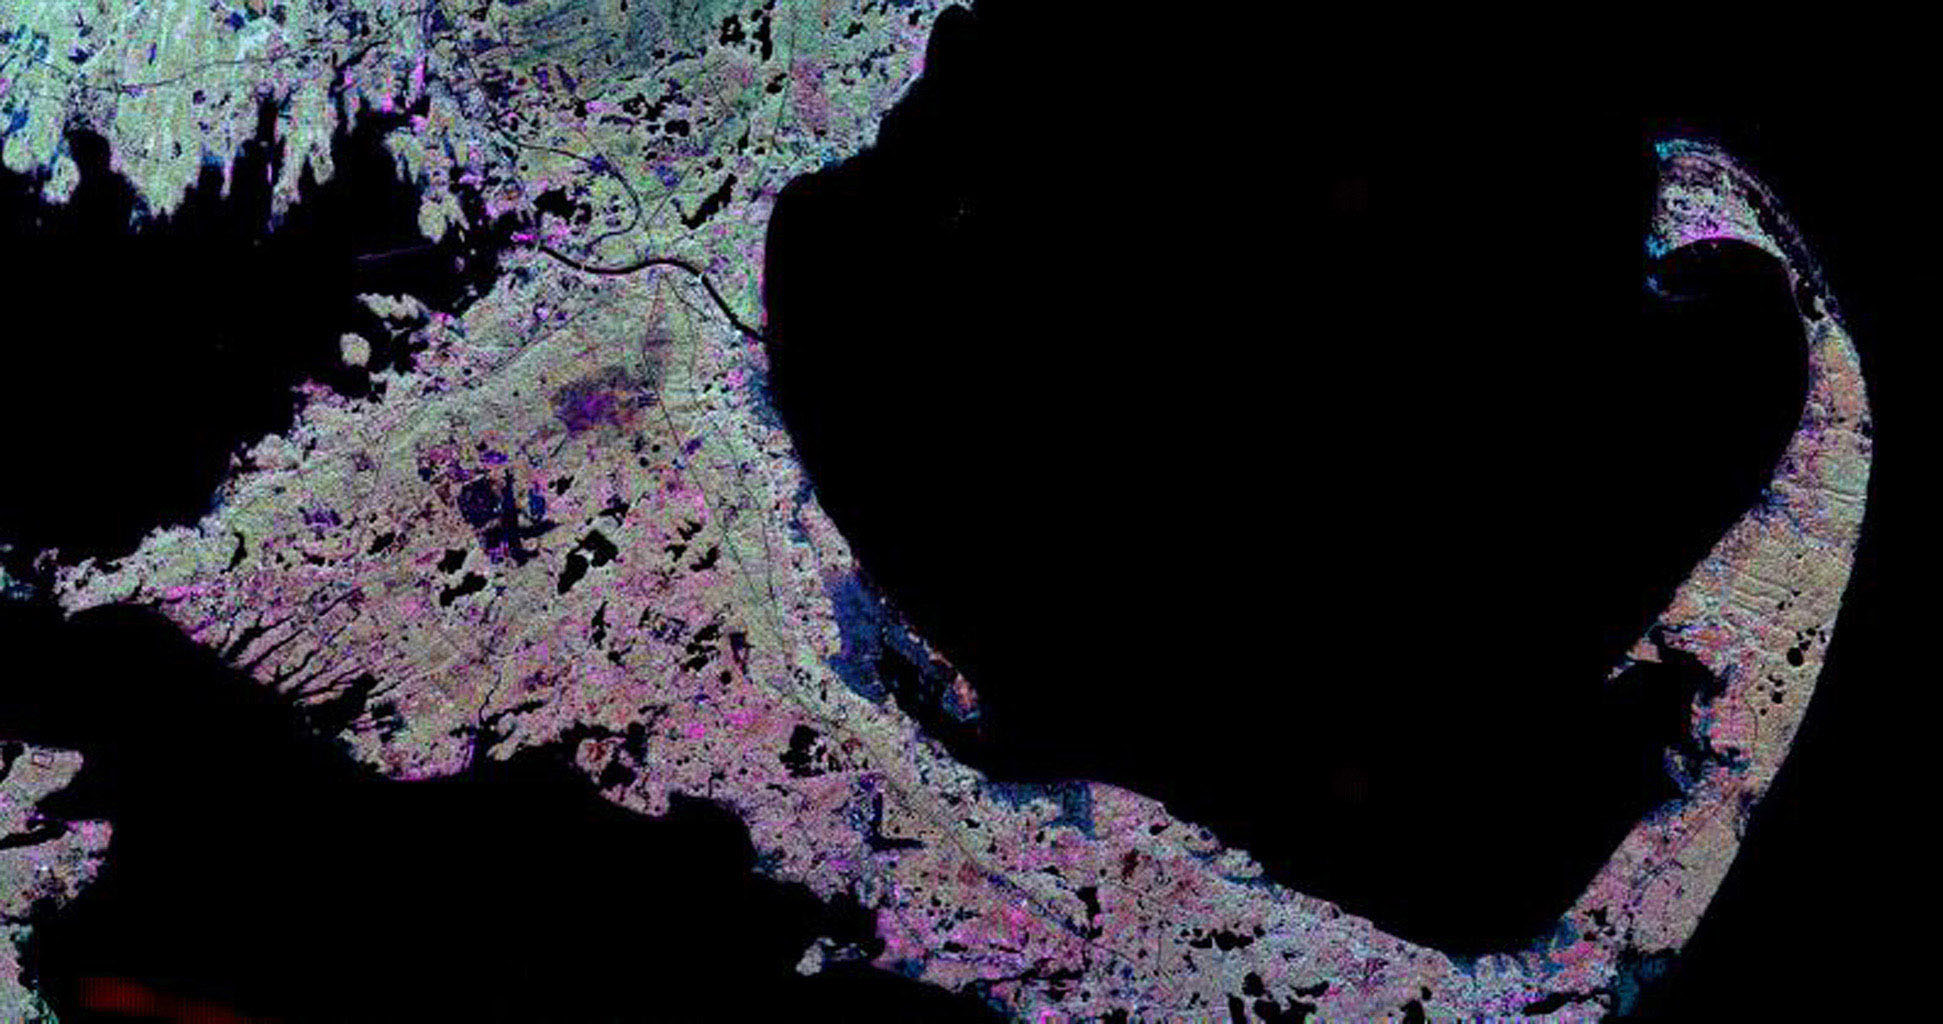 This spaceborne radar image from NASA's Spaceborne Imaging Radar C/X-Band Synthetic Aperture Radar shows the famous 'hook' of Cape Cod, Massachusetts. The Cape, which juts out into the Atlantic Ocean southeast of Boston.